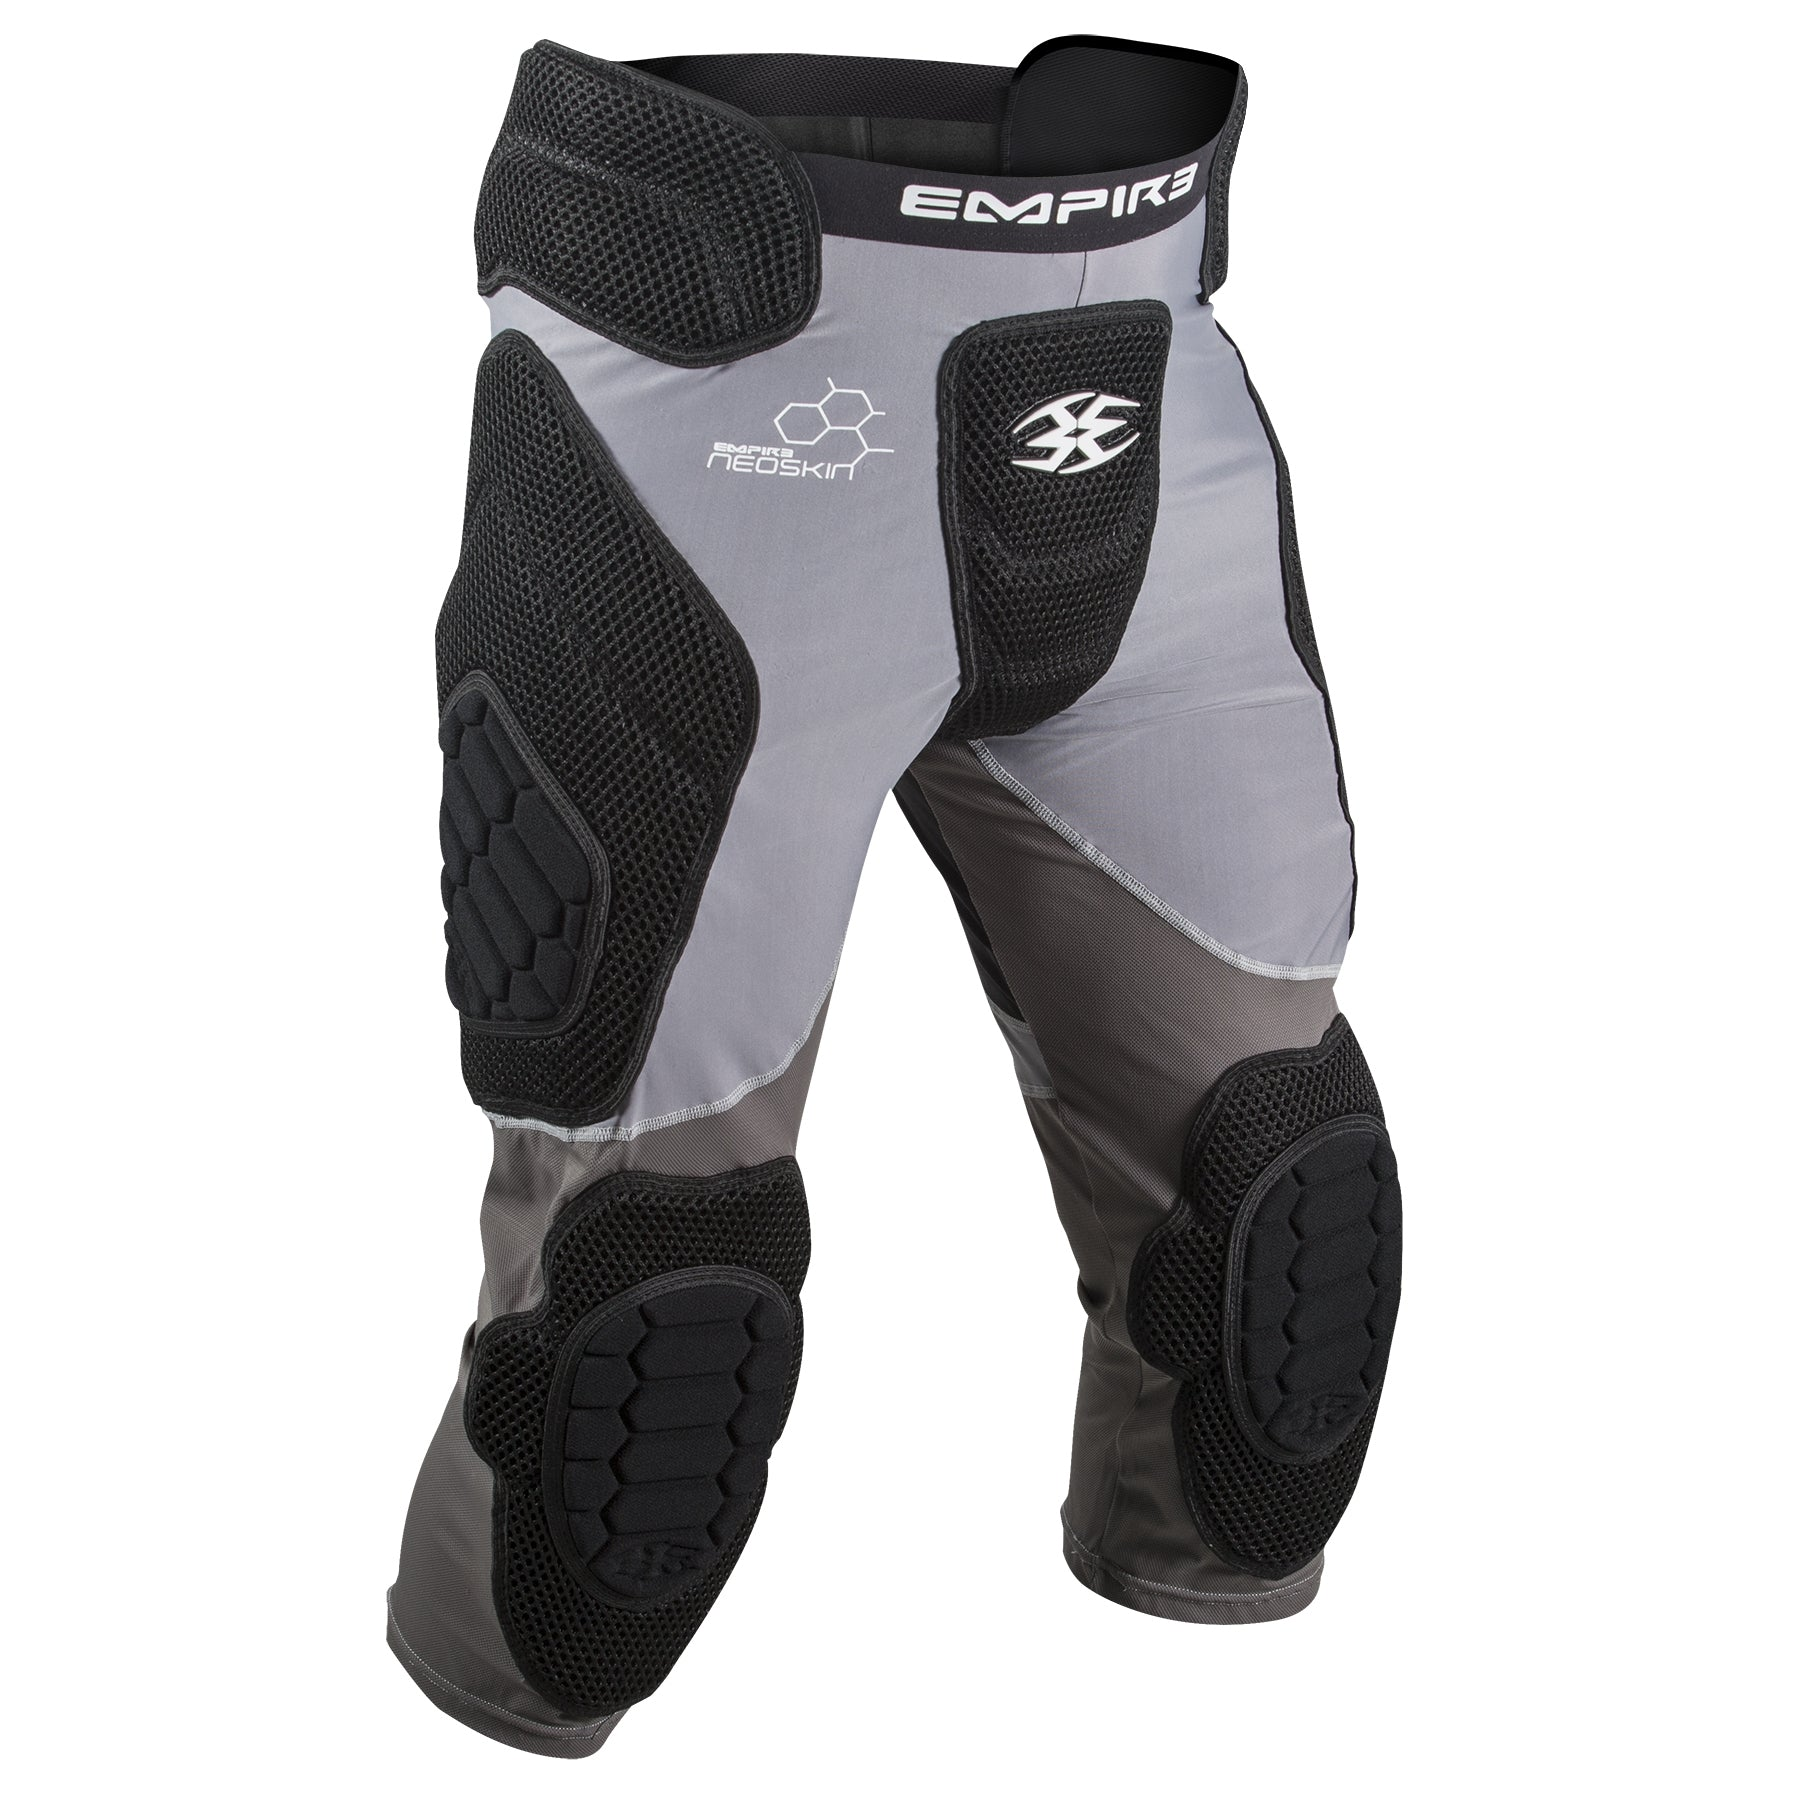 Empire NeoSkin Slide Shorts W/ Knee Pads